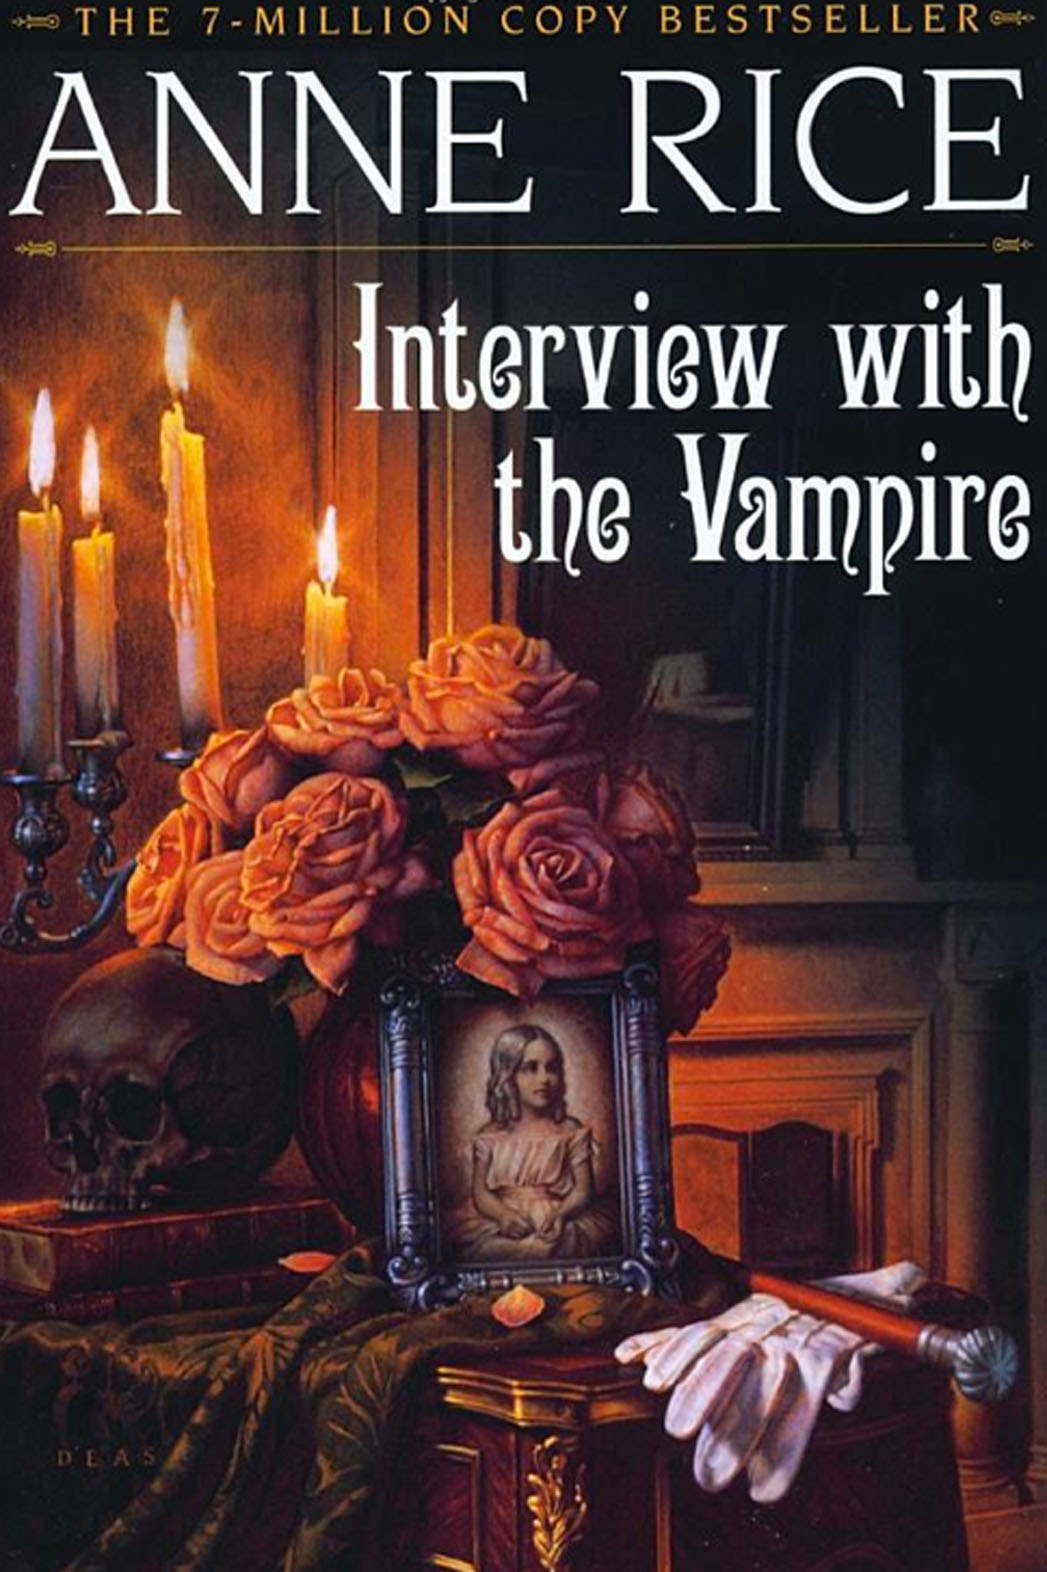 vampire-chronicles-interview-with-the-vampire-anne-rice-book-cover